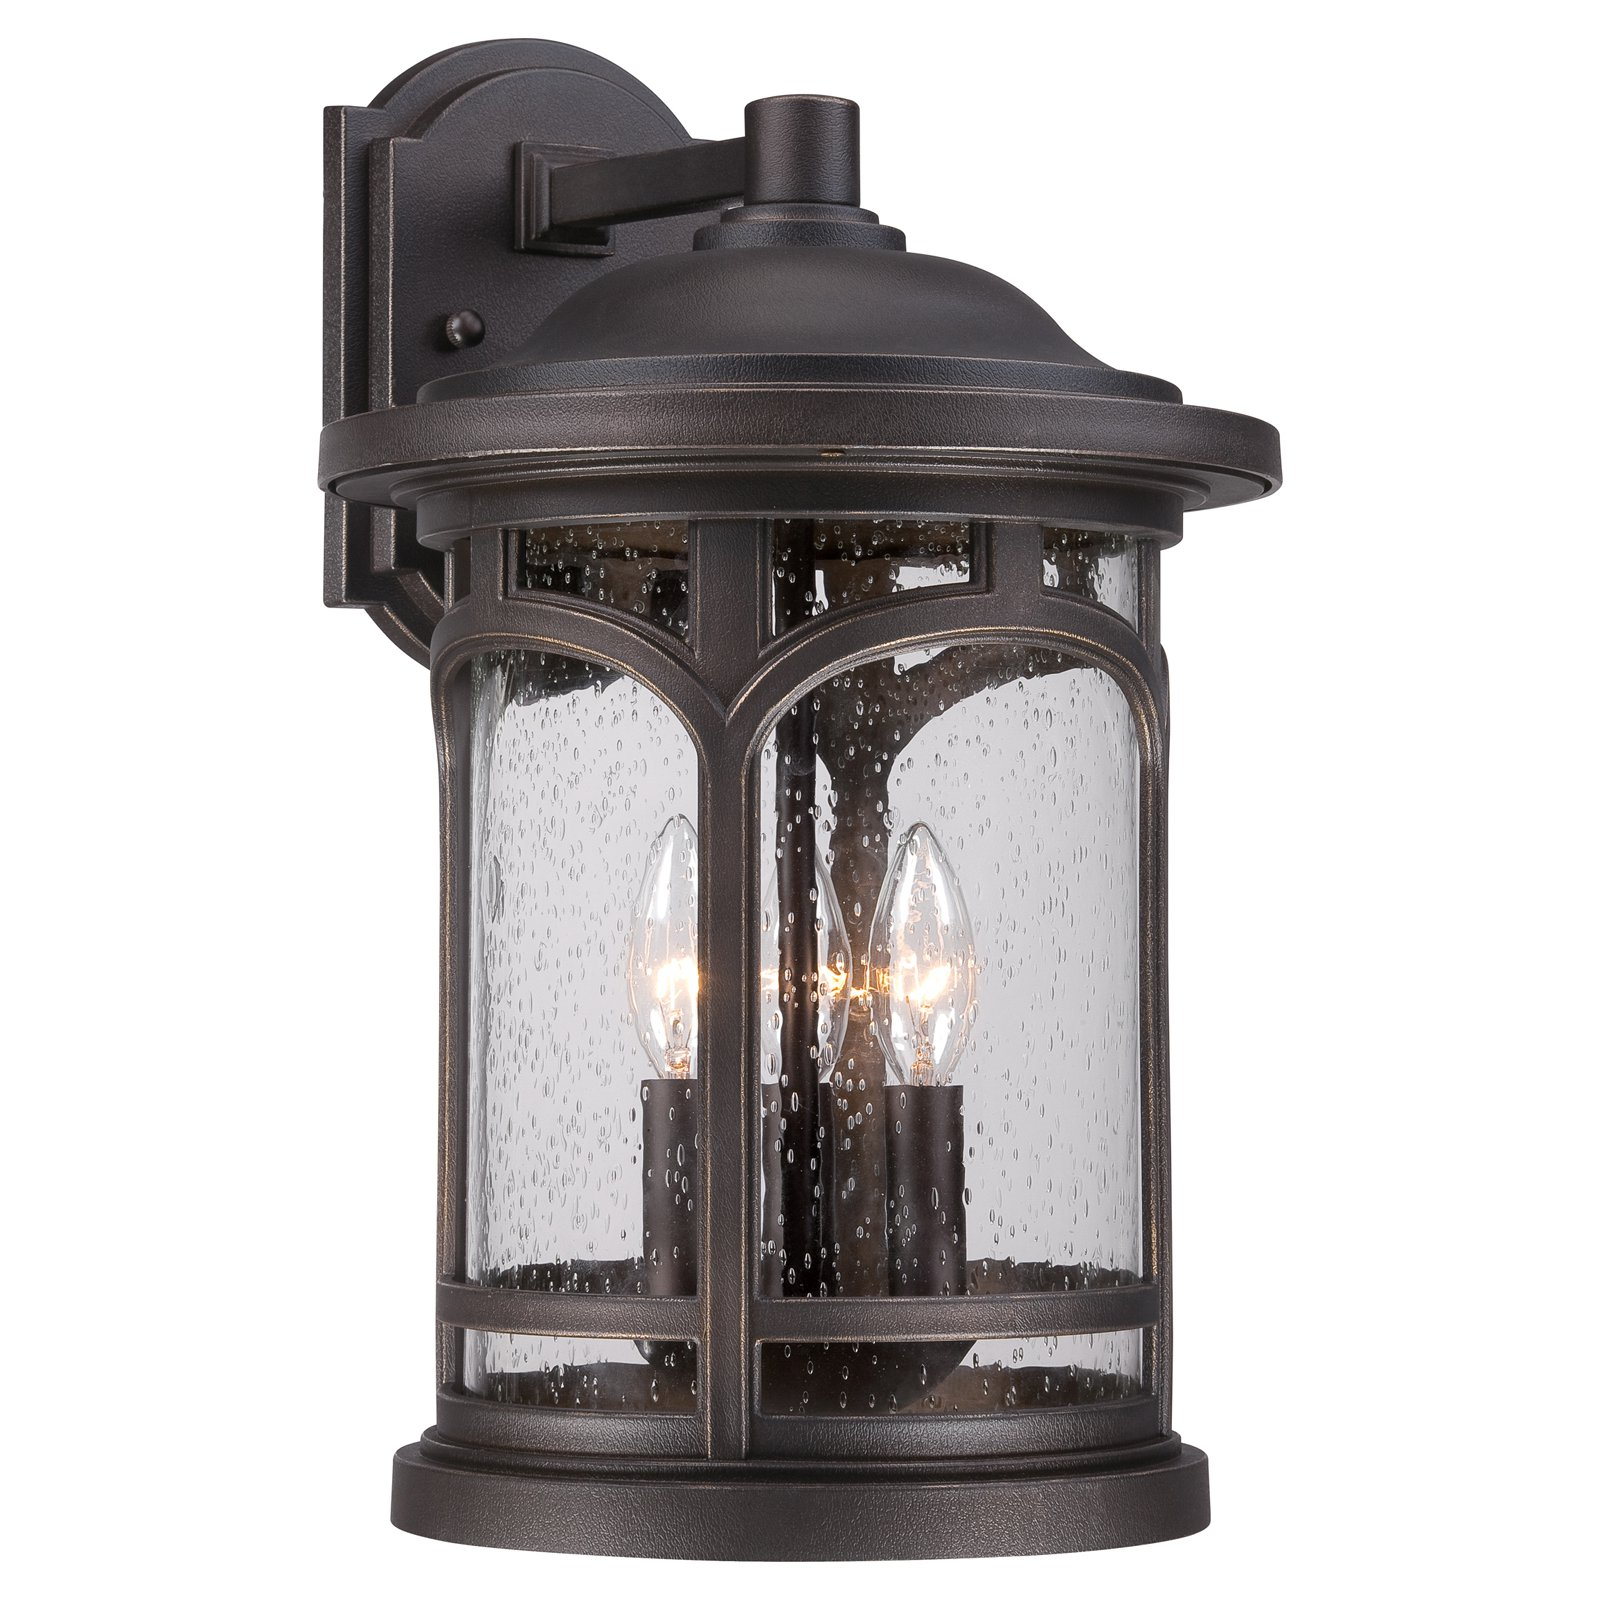 Quoizel Marblehead MBH8411PN Outdoor Wall Lantern